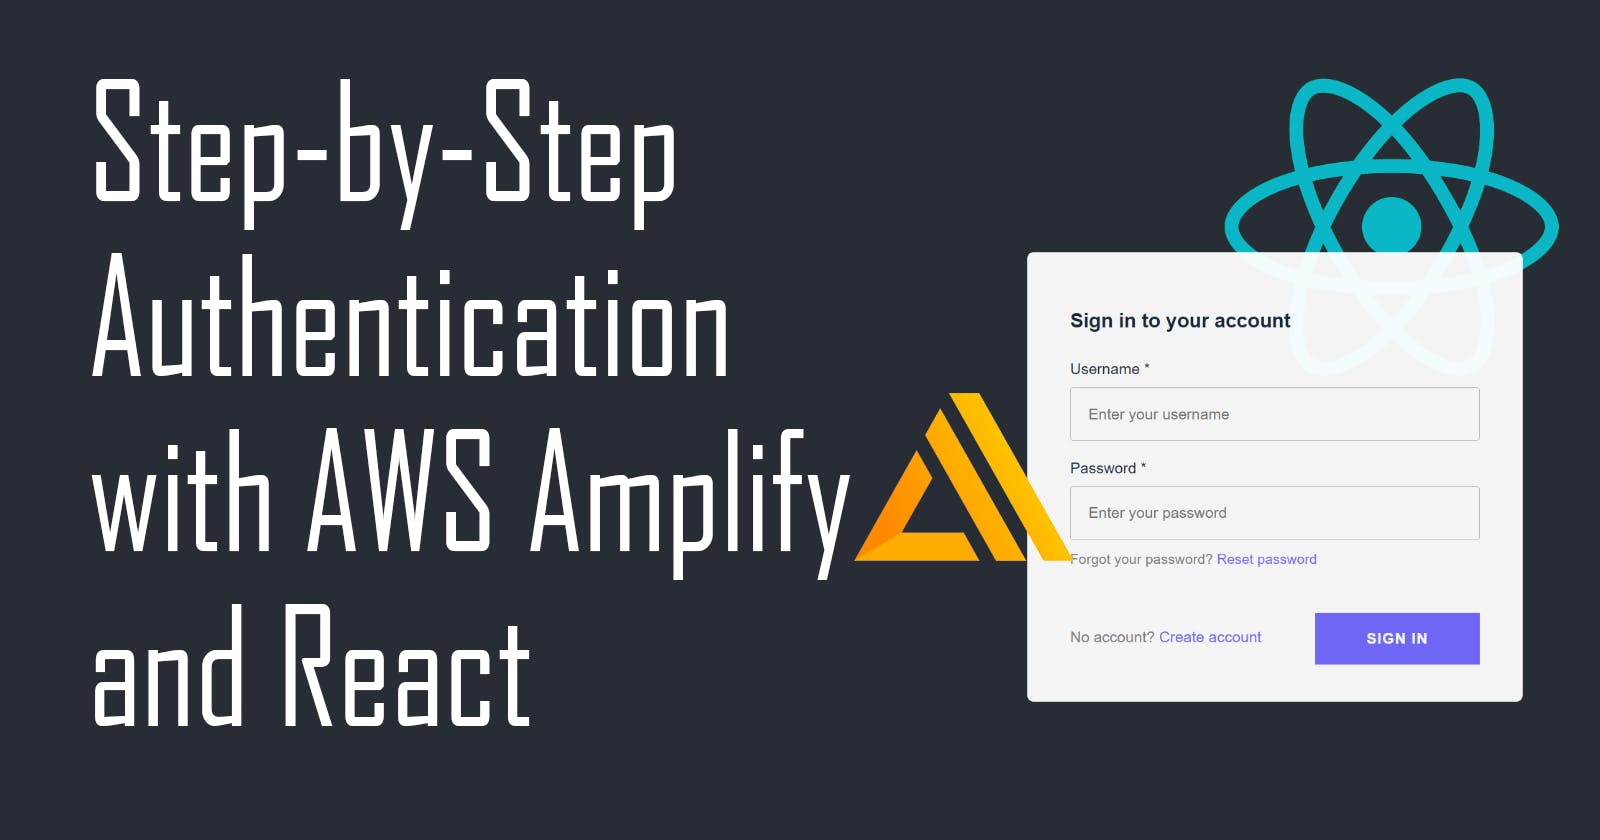 Build an Authentication System with AWS Amplify, Cognito and React